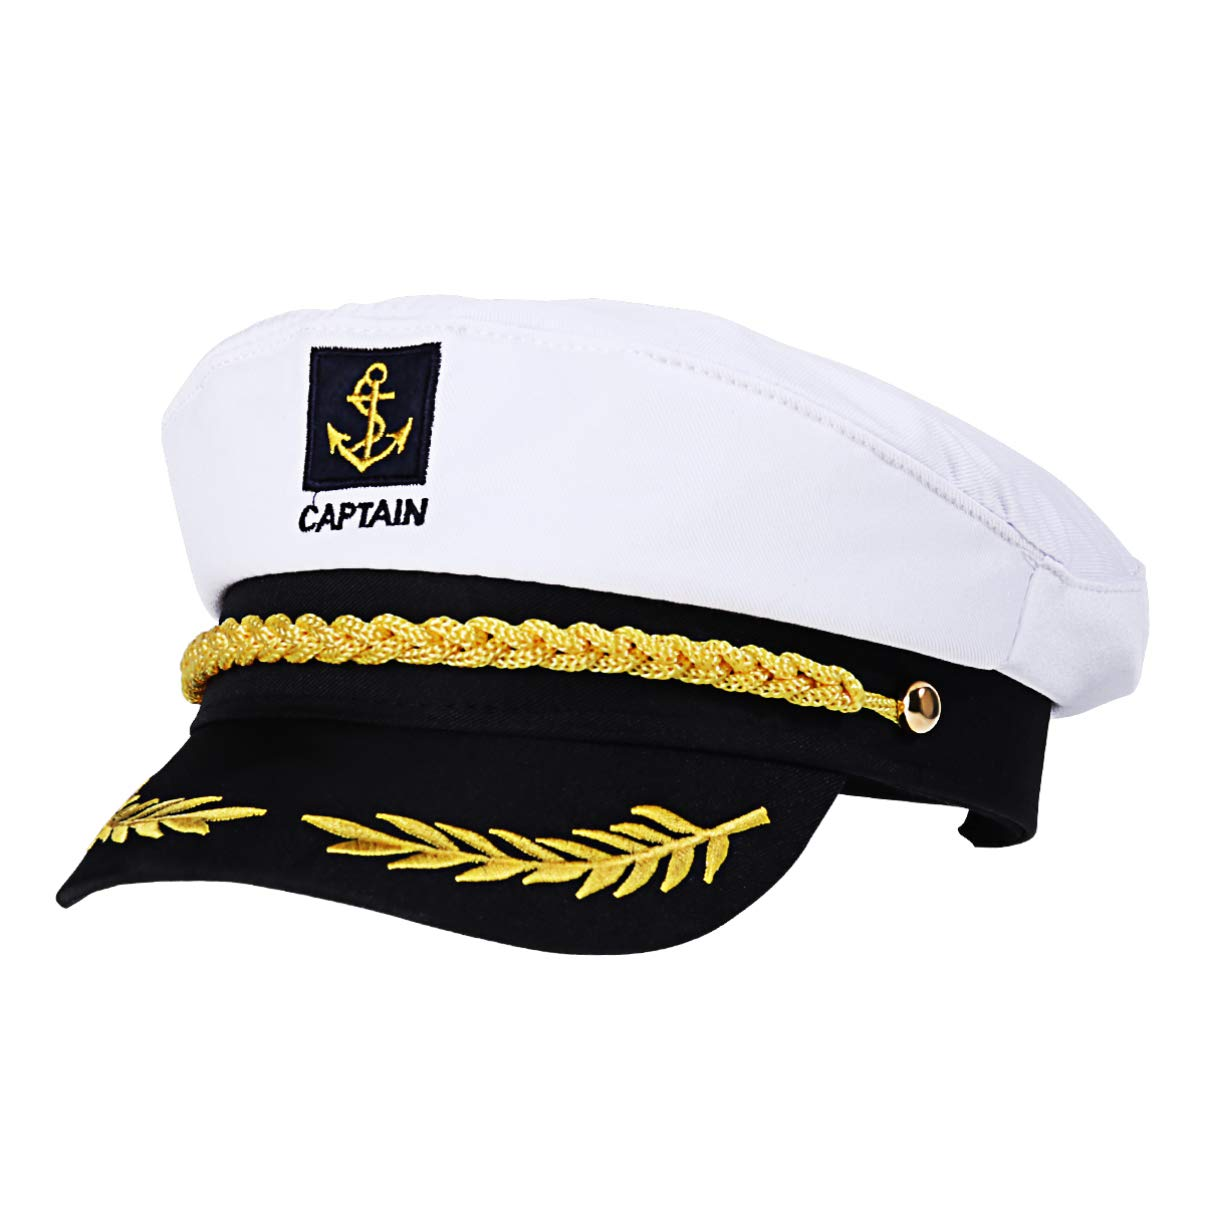 Captain Hat Cap Costume Navy Marine Admiral Hat for Costume Accessory